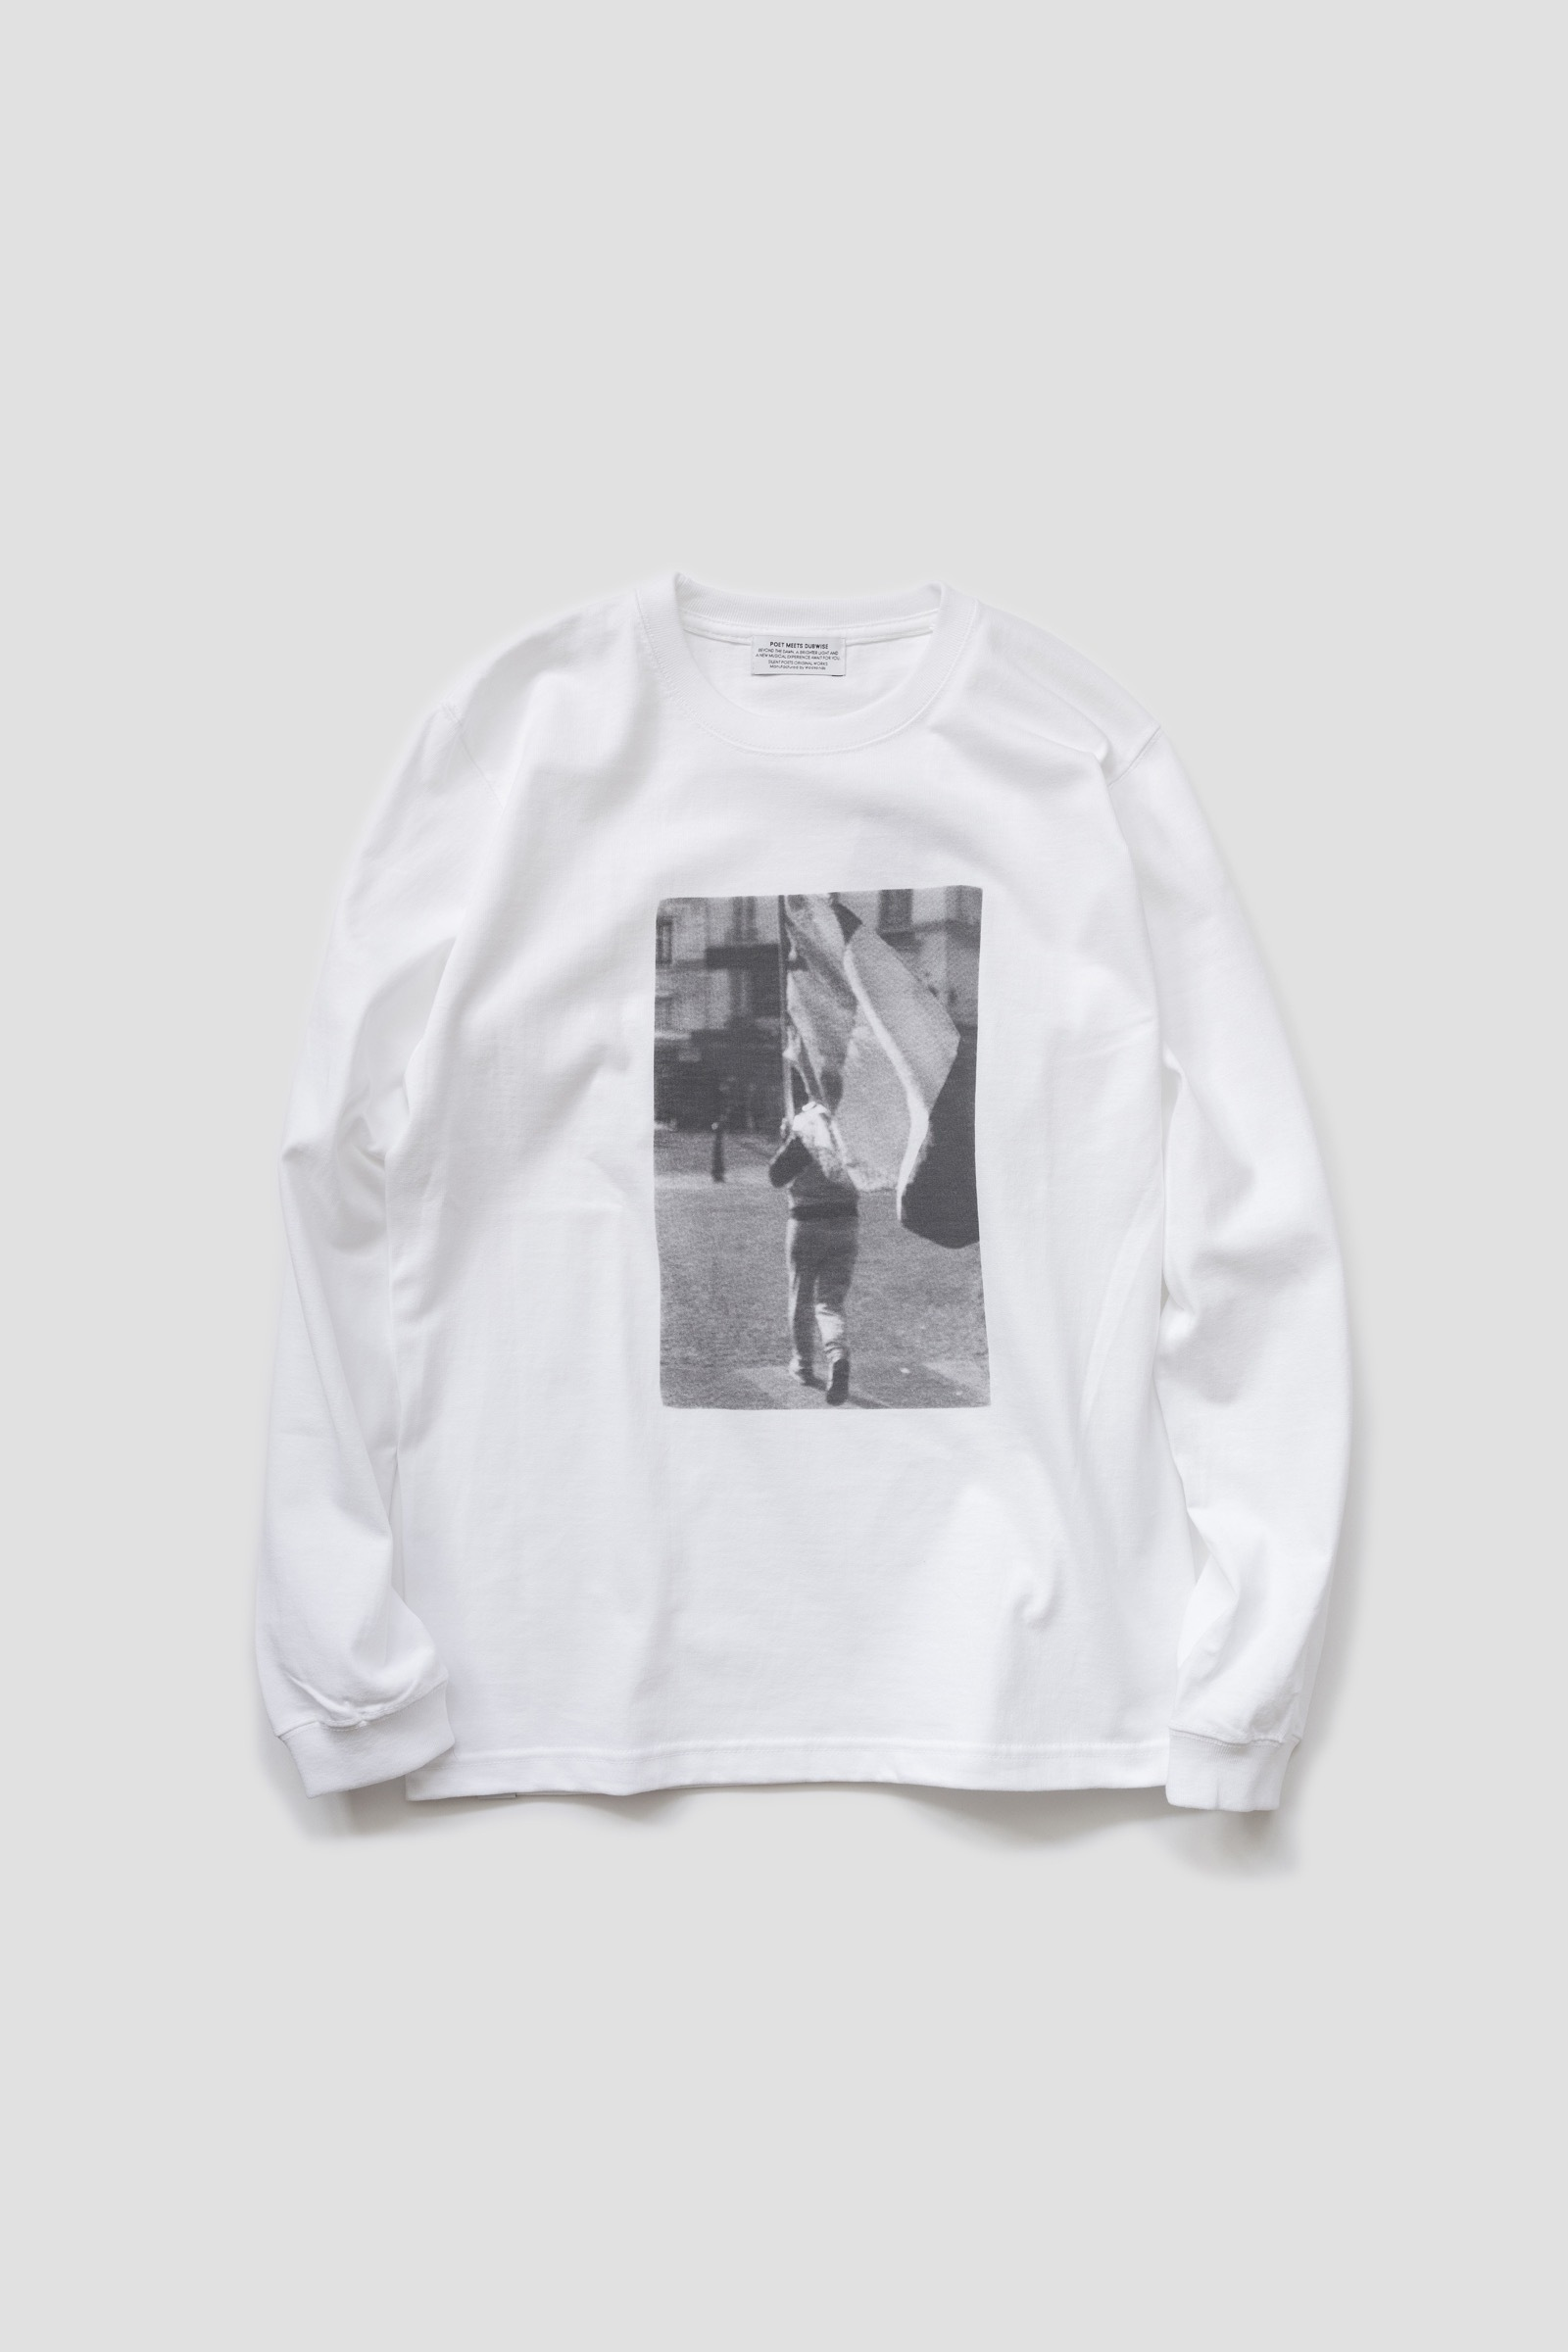 【POET MEETS DUBWISE(ポエトミーツダブワイズ)】 POTENTIAL MEETING LONG SLEEVE TEE